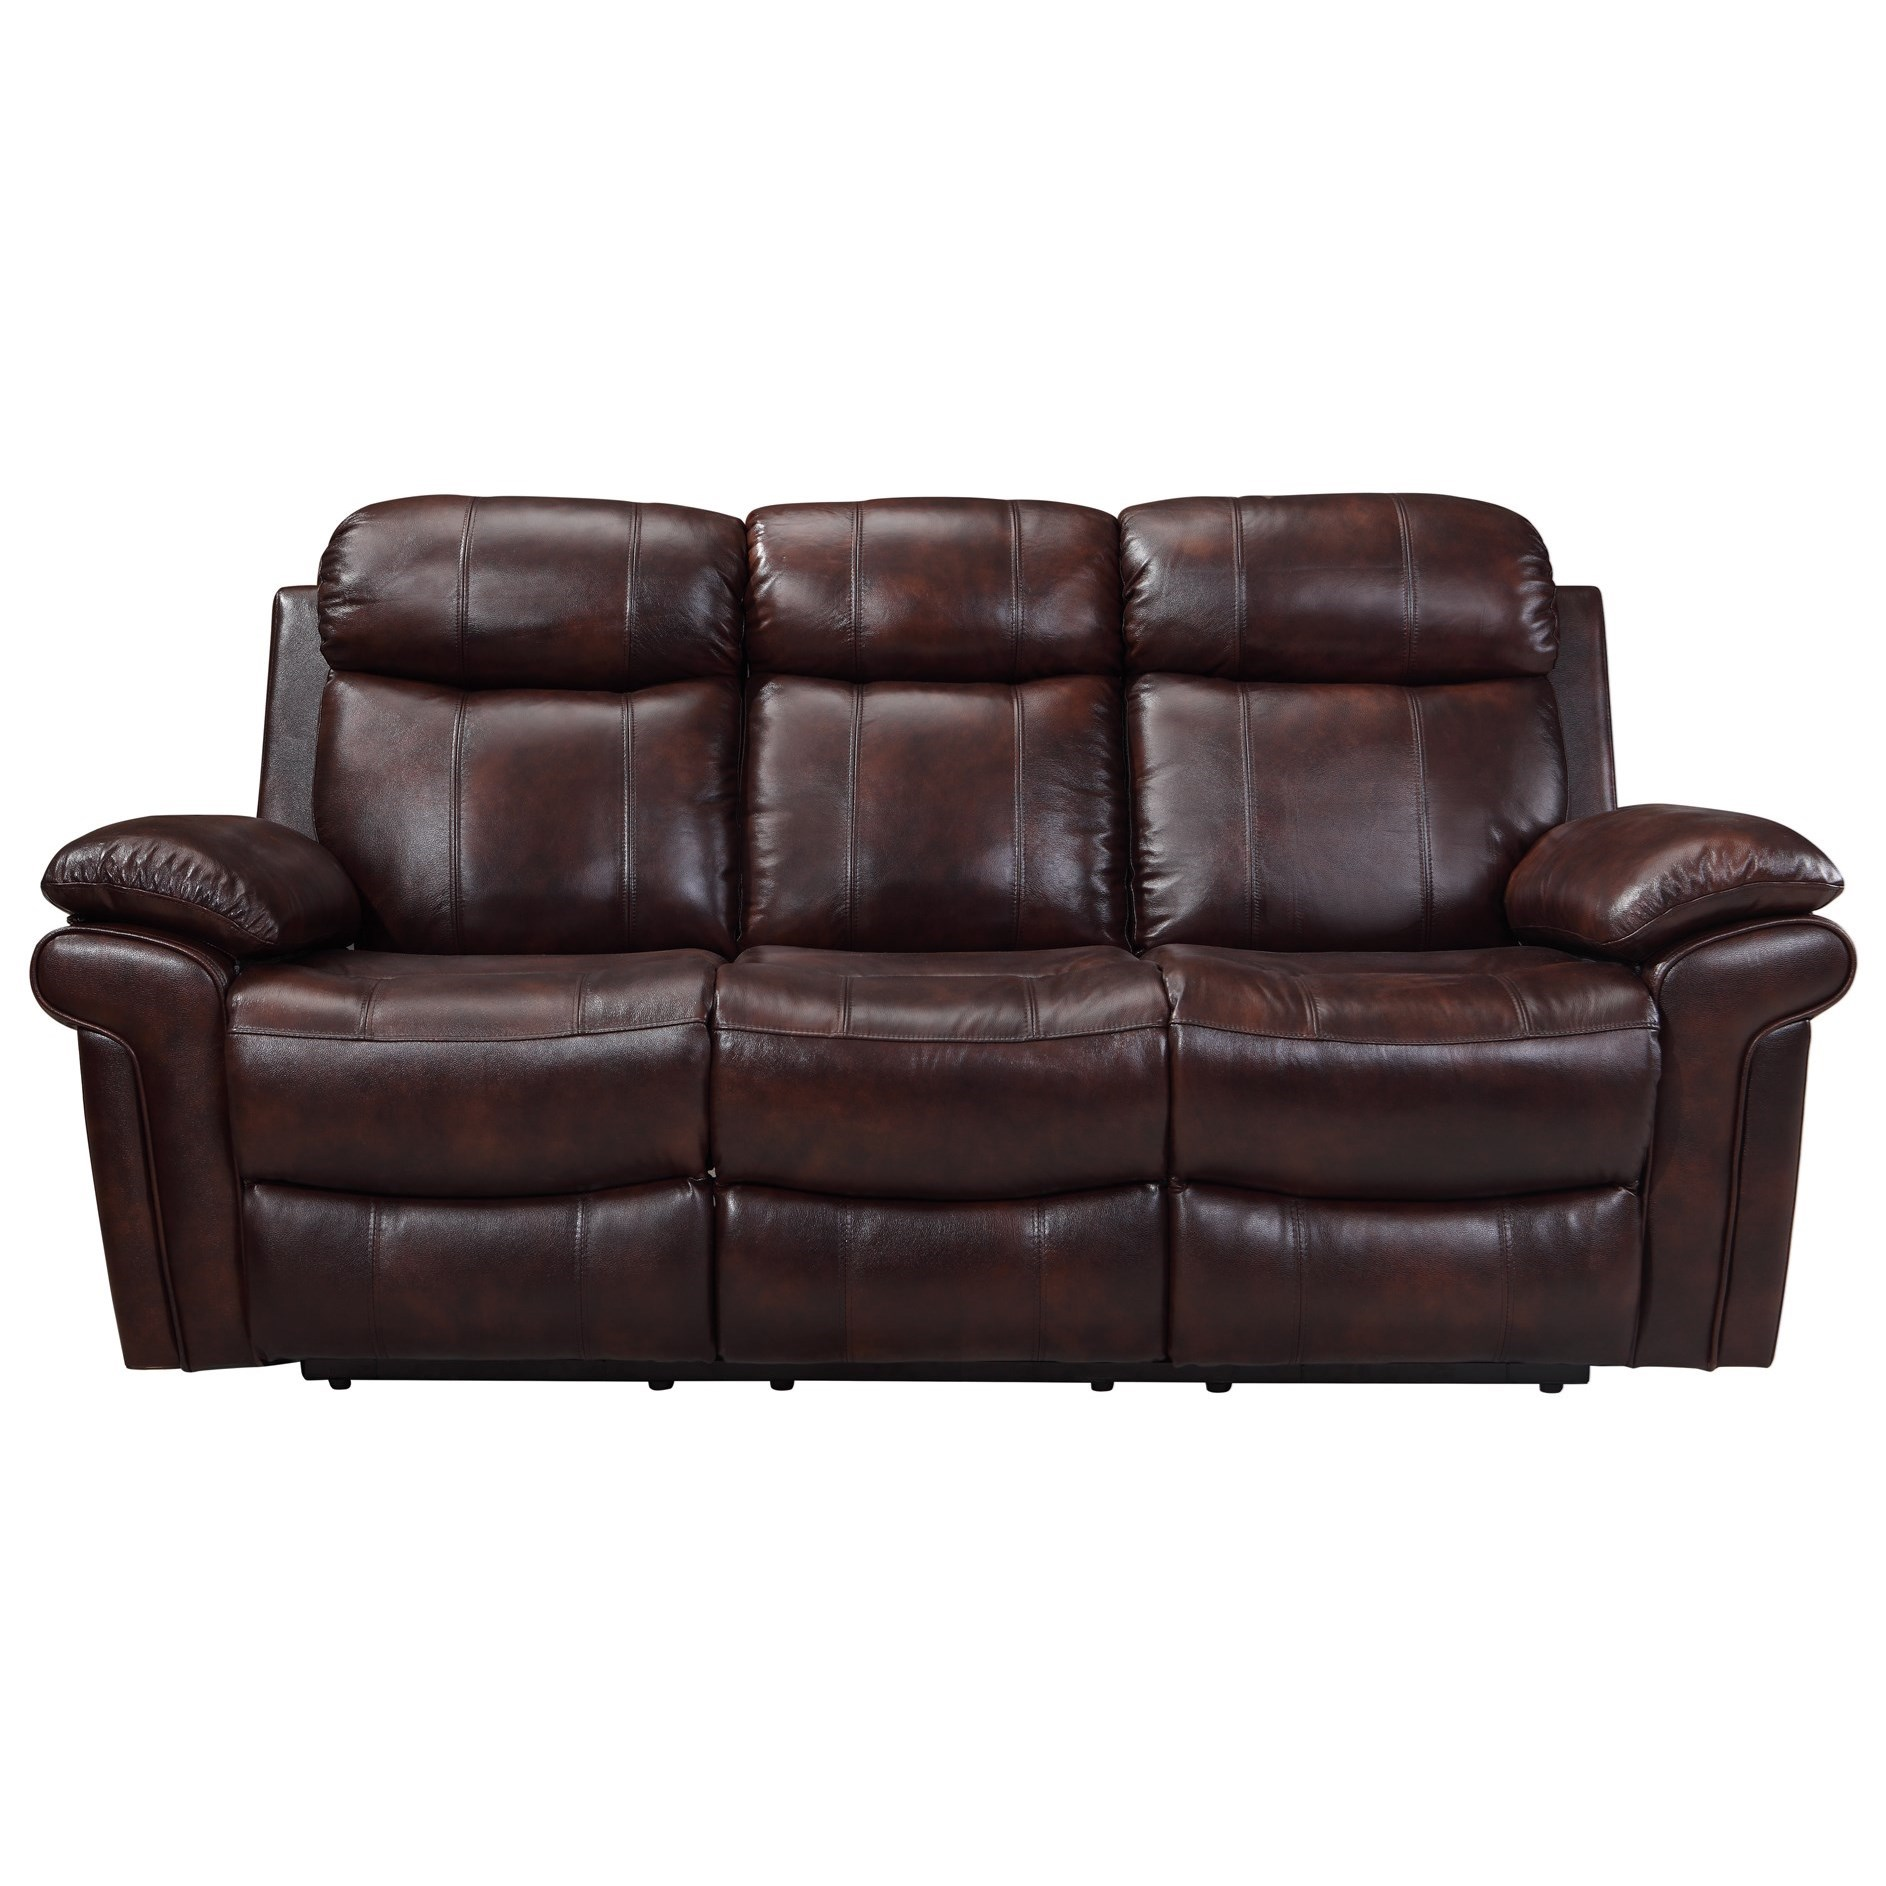 Joplin Power Reclining Leather Sofa at Belfort Furniture